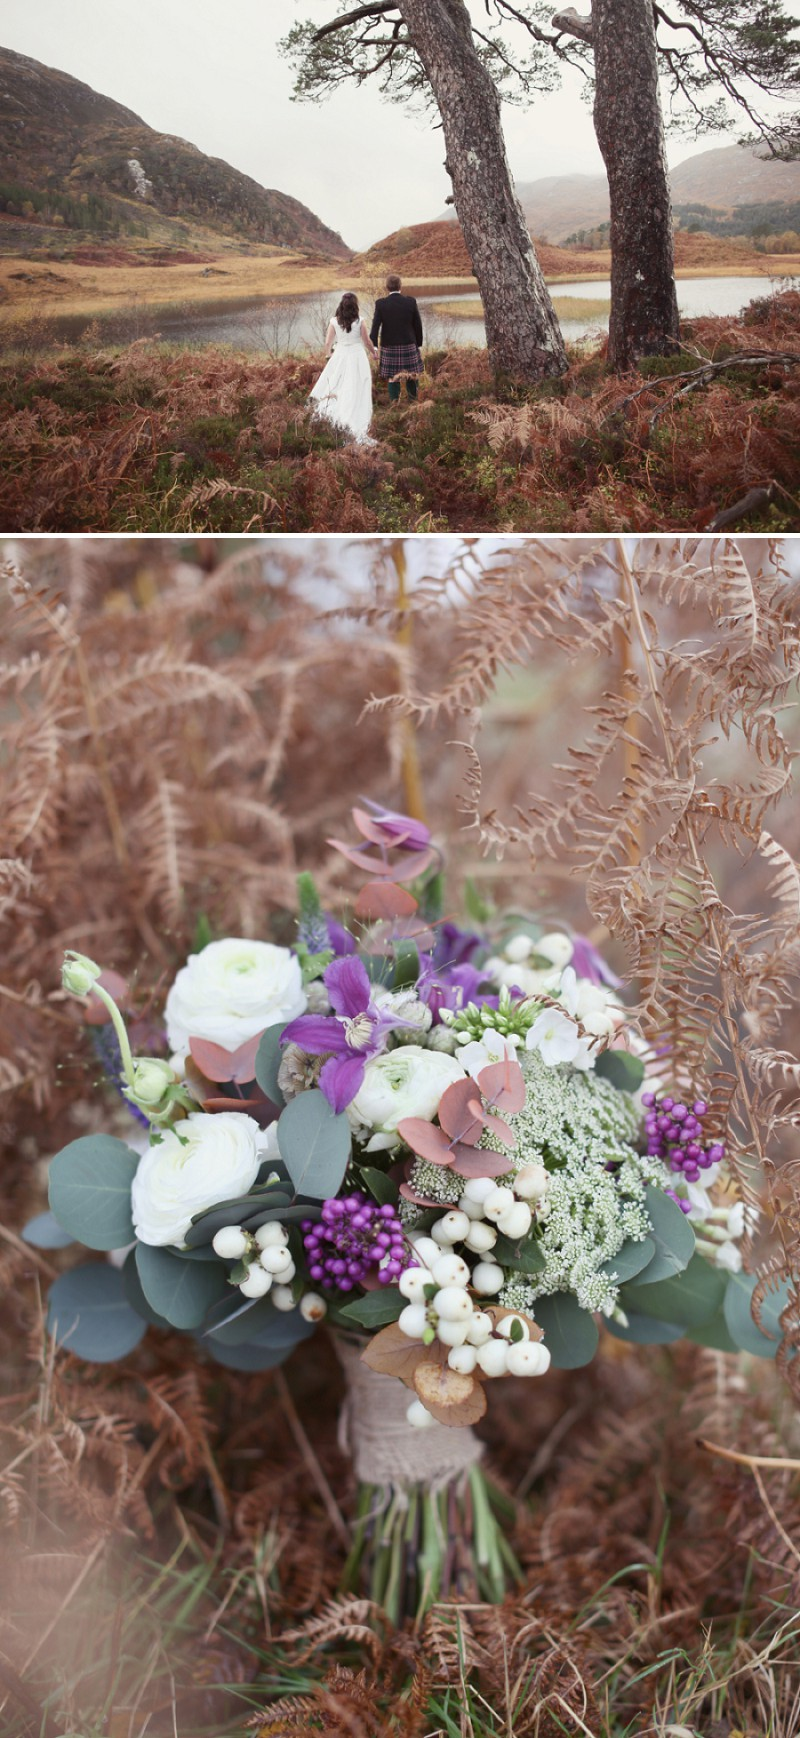 An Exquisite Winter Humanist Wedding By Glenfinnan Loch In Scotland With An Ian Stuart Dress And Tartan Wedding Theme By Craig And Eva Sanders Photography._0001